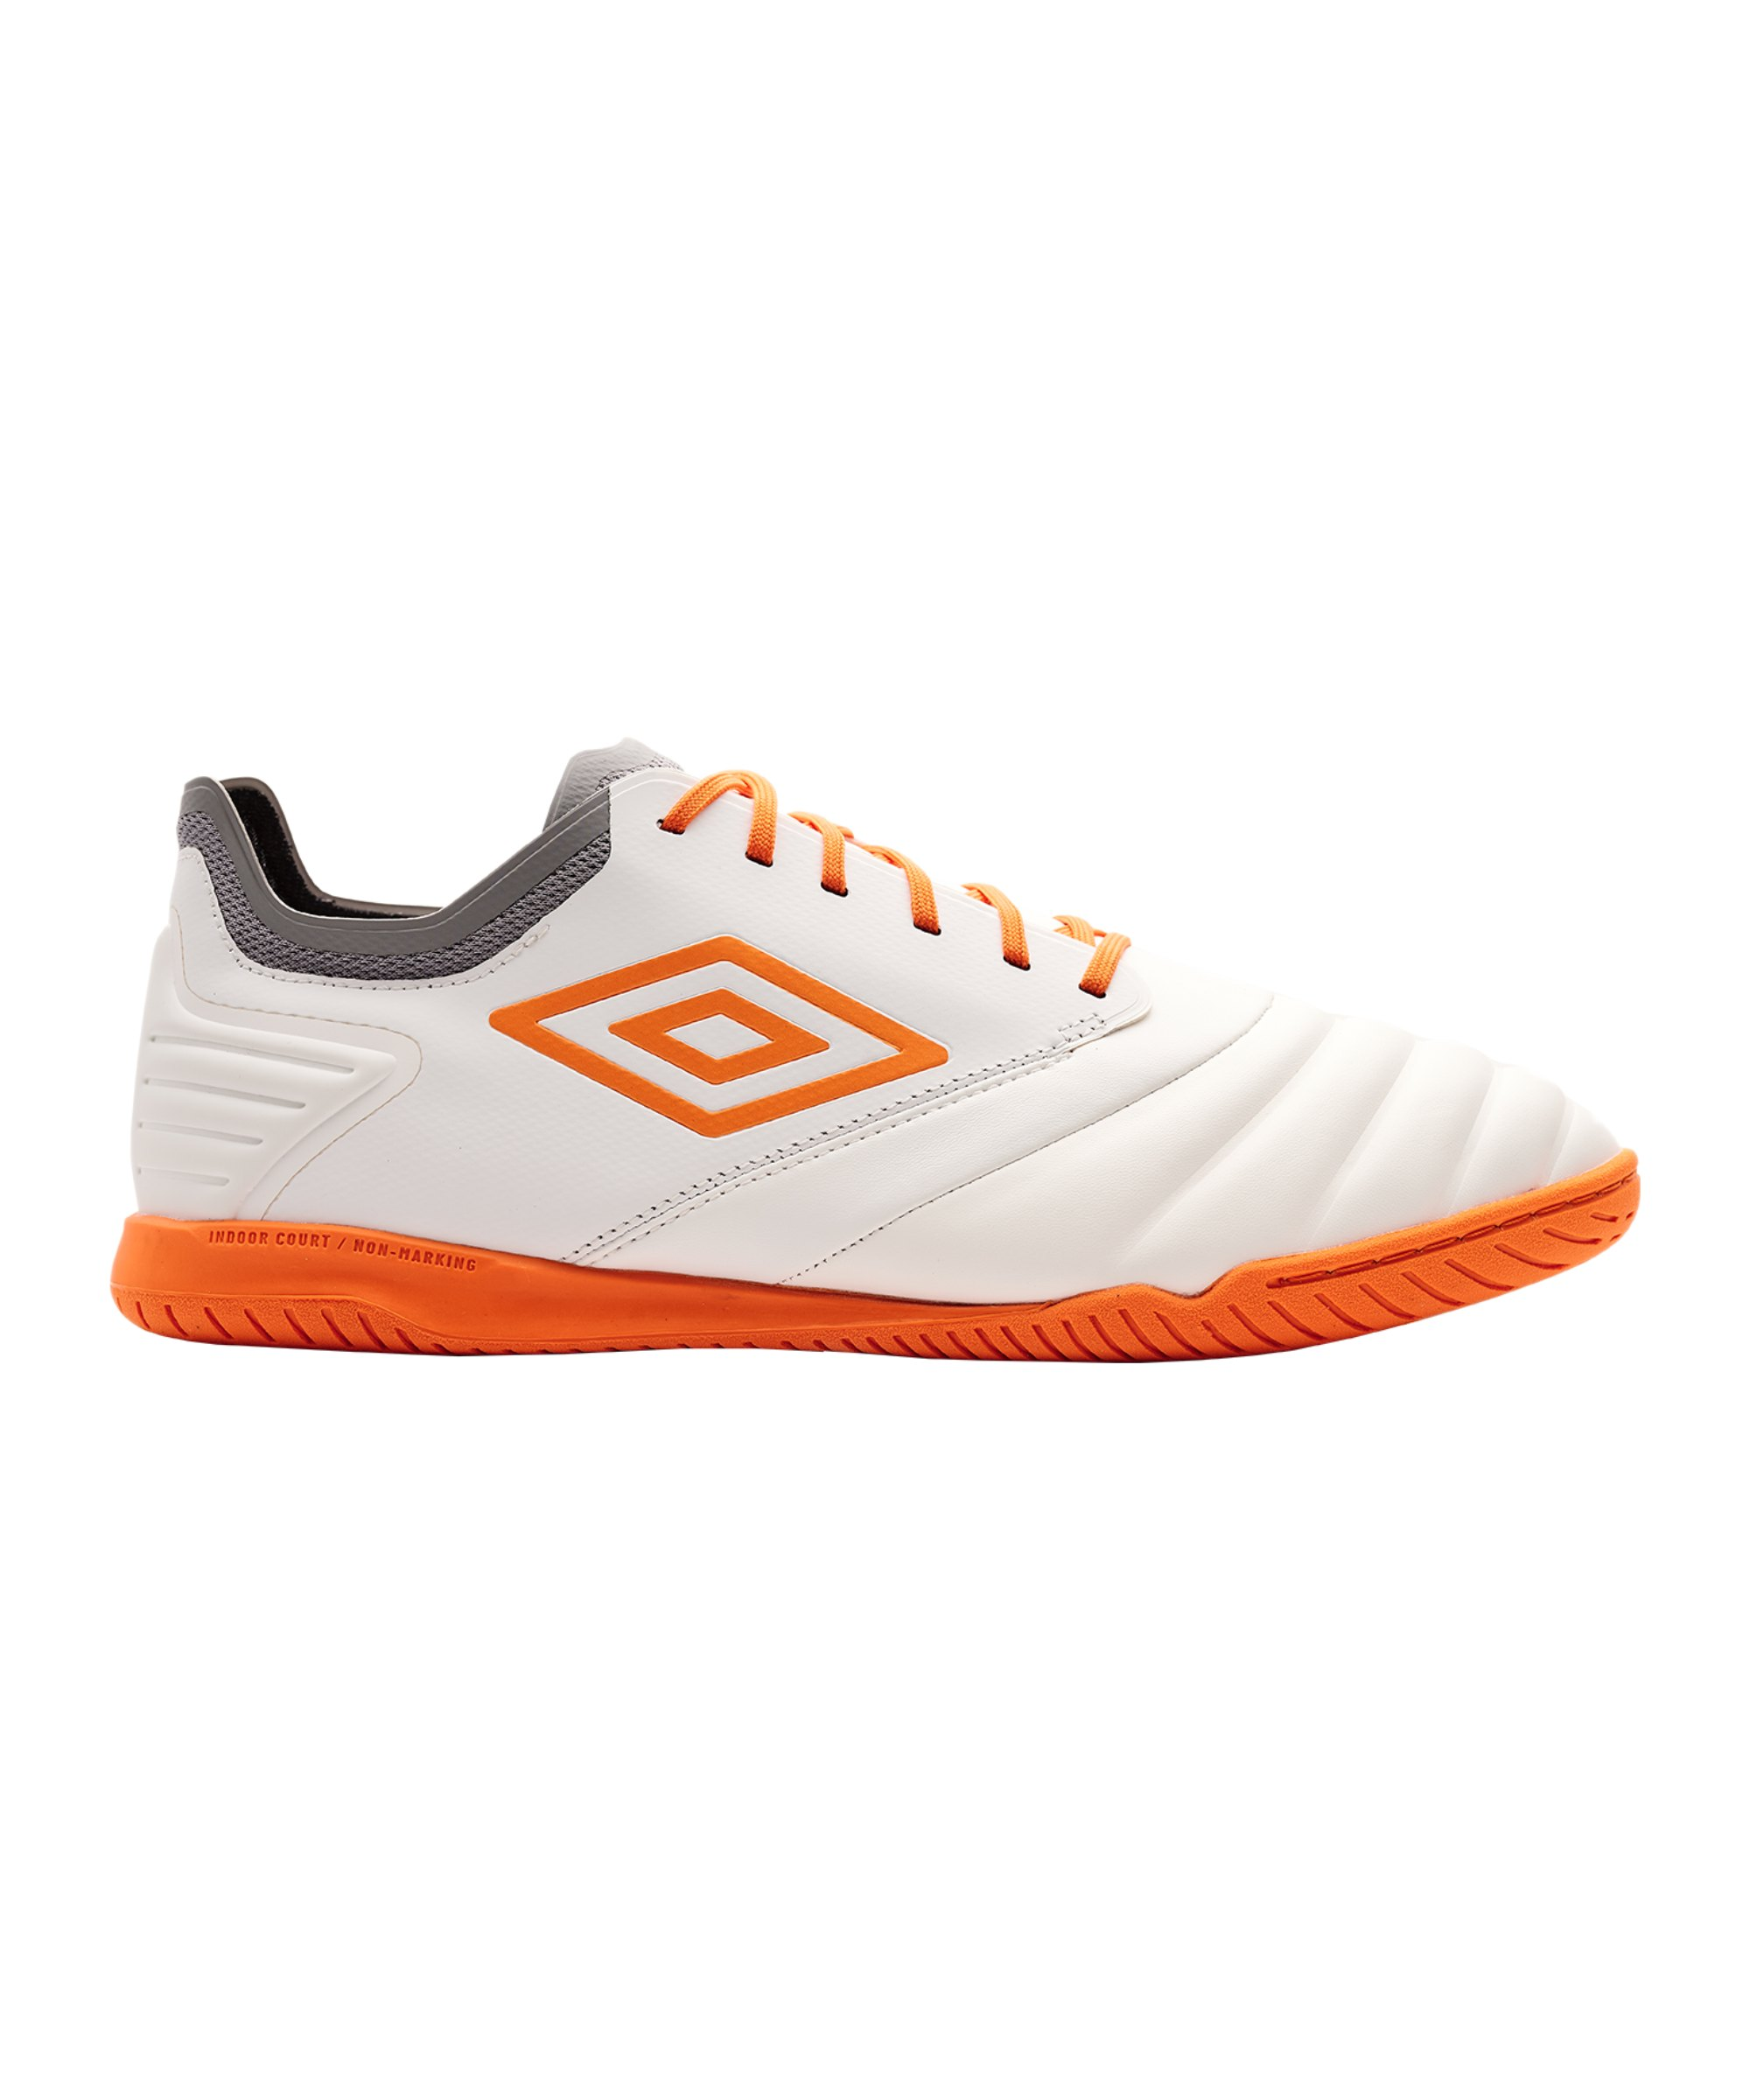 Umbro Tocco Club IC Weiss FJM9 - weiss